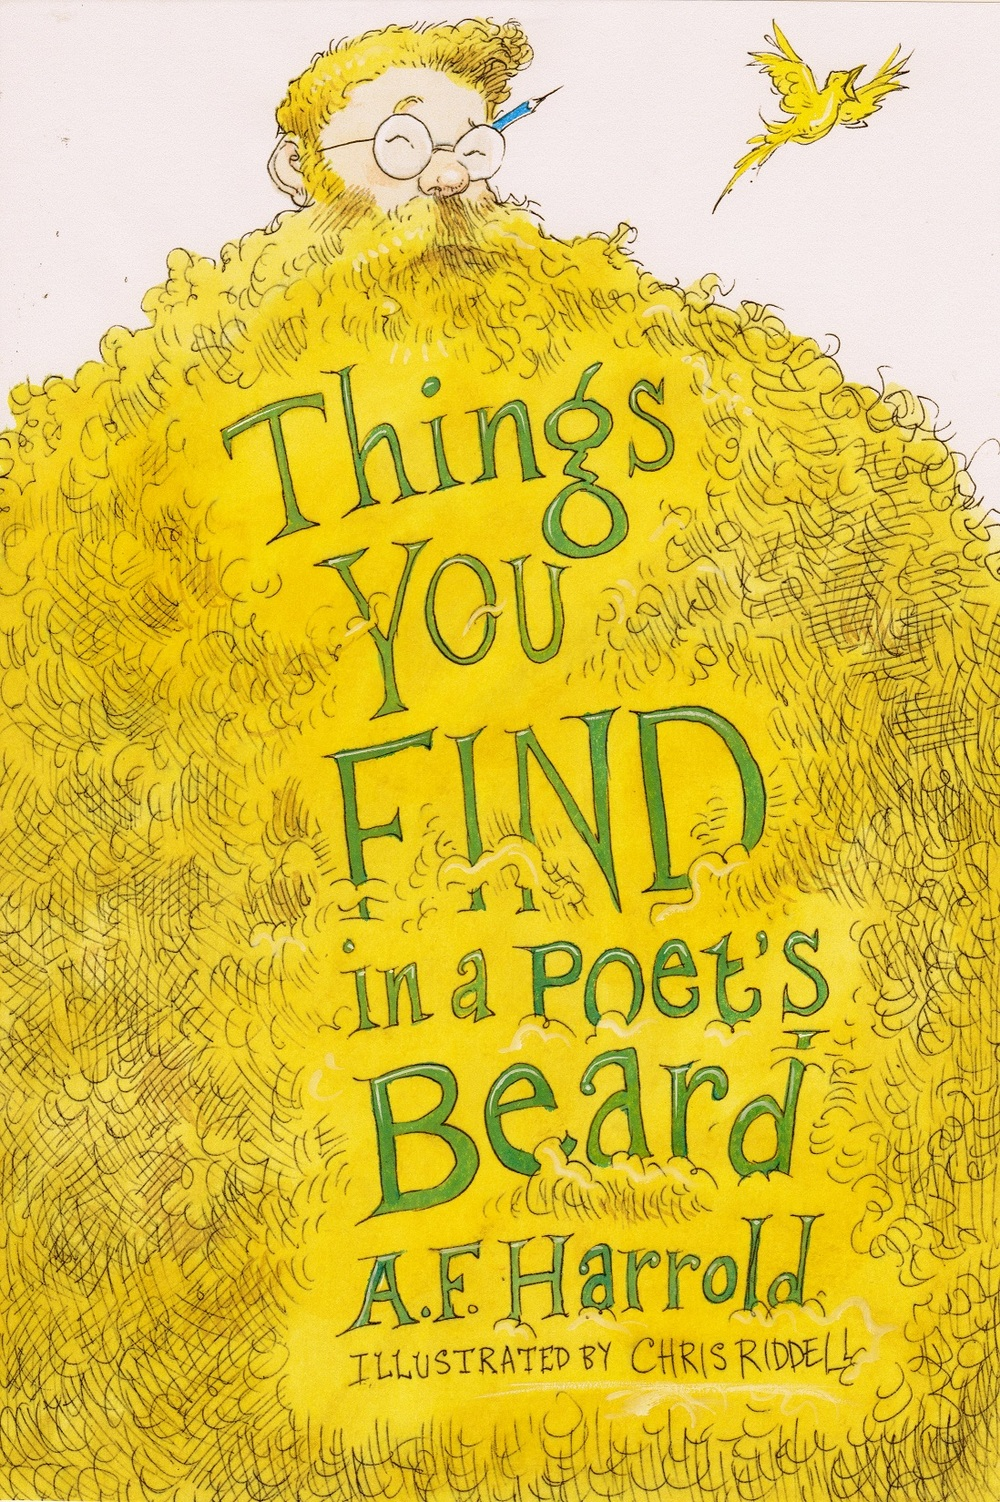 Cover by Chris Riddell